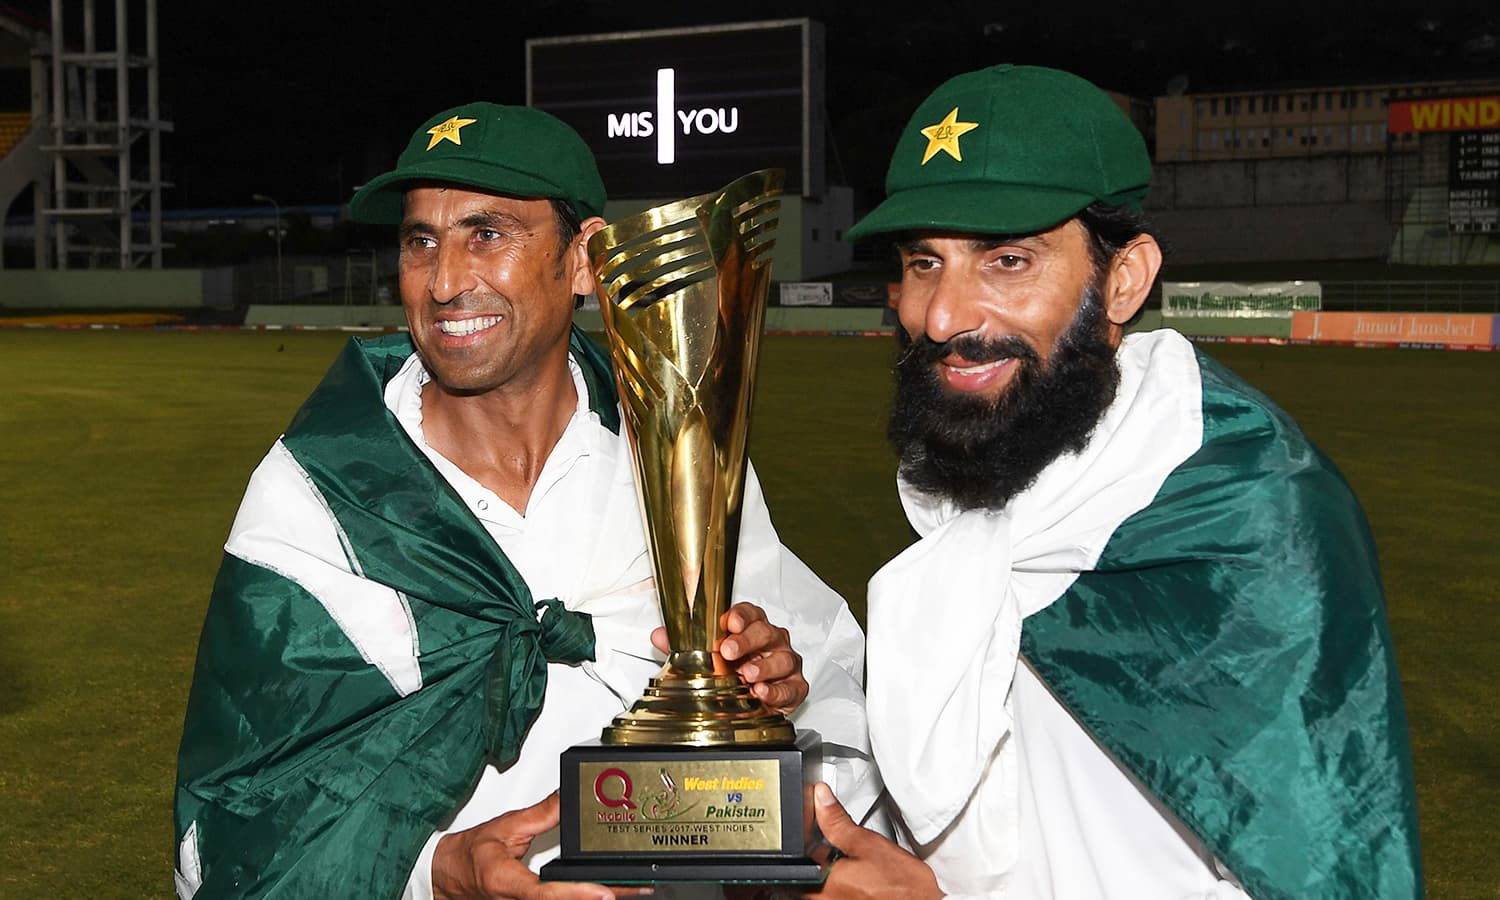 Younis and Misbah raise the victor's trophy after securing Pakistan's first-ever win at the Caribbean. — AFP